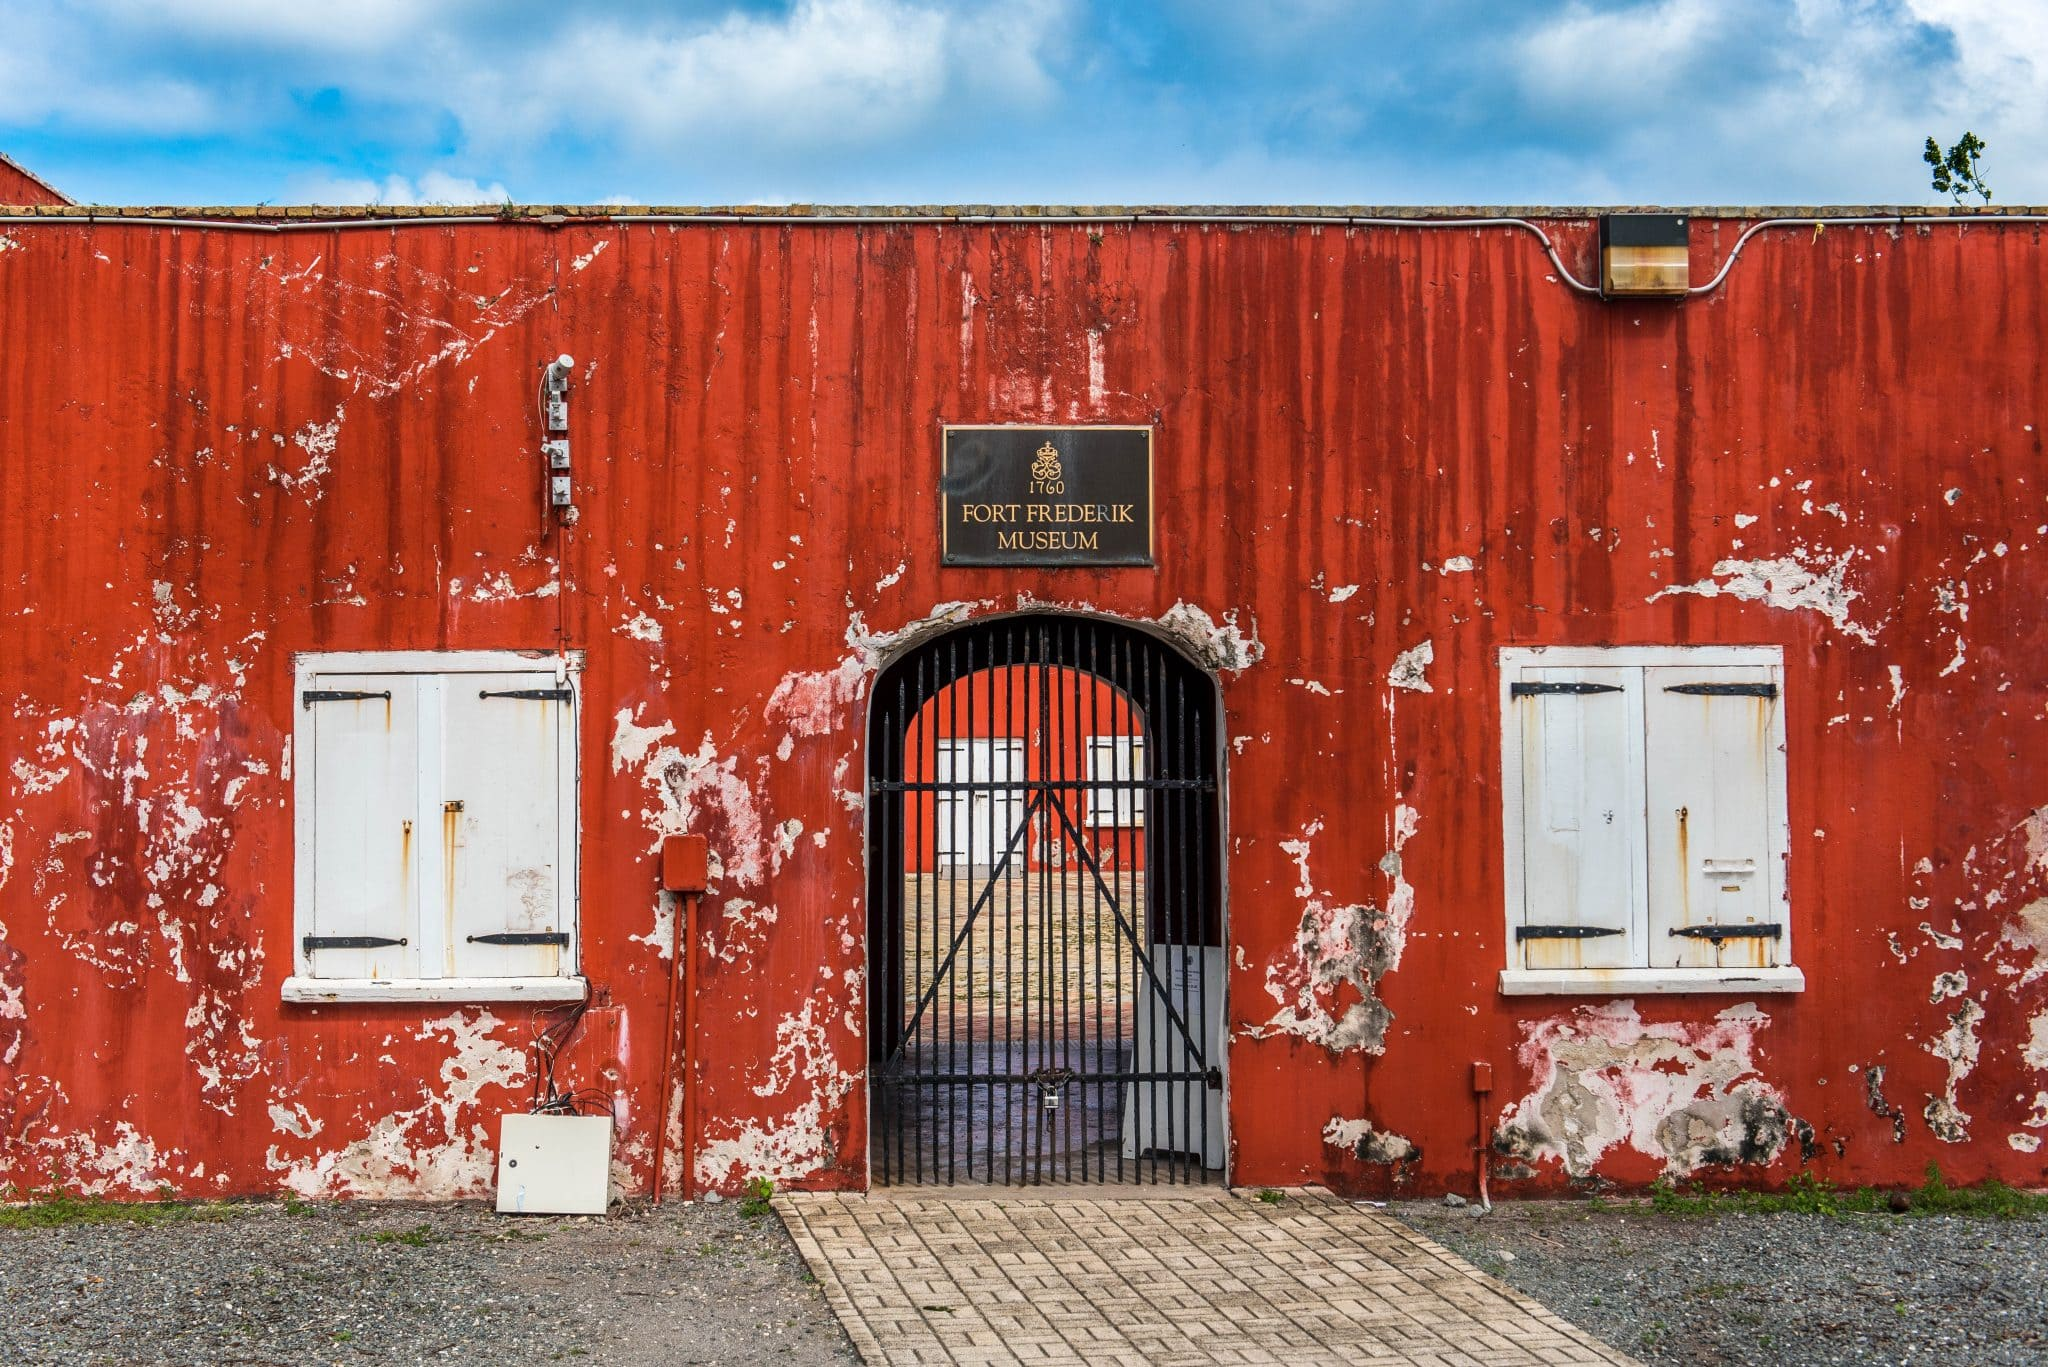 Fort Frederik: A Central Piece of Historic Frederiksted